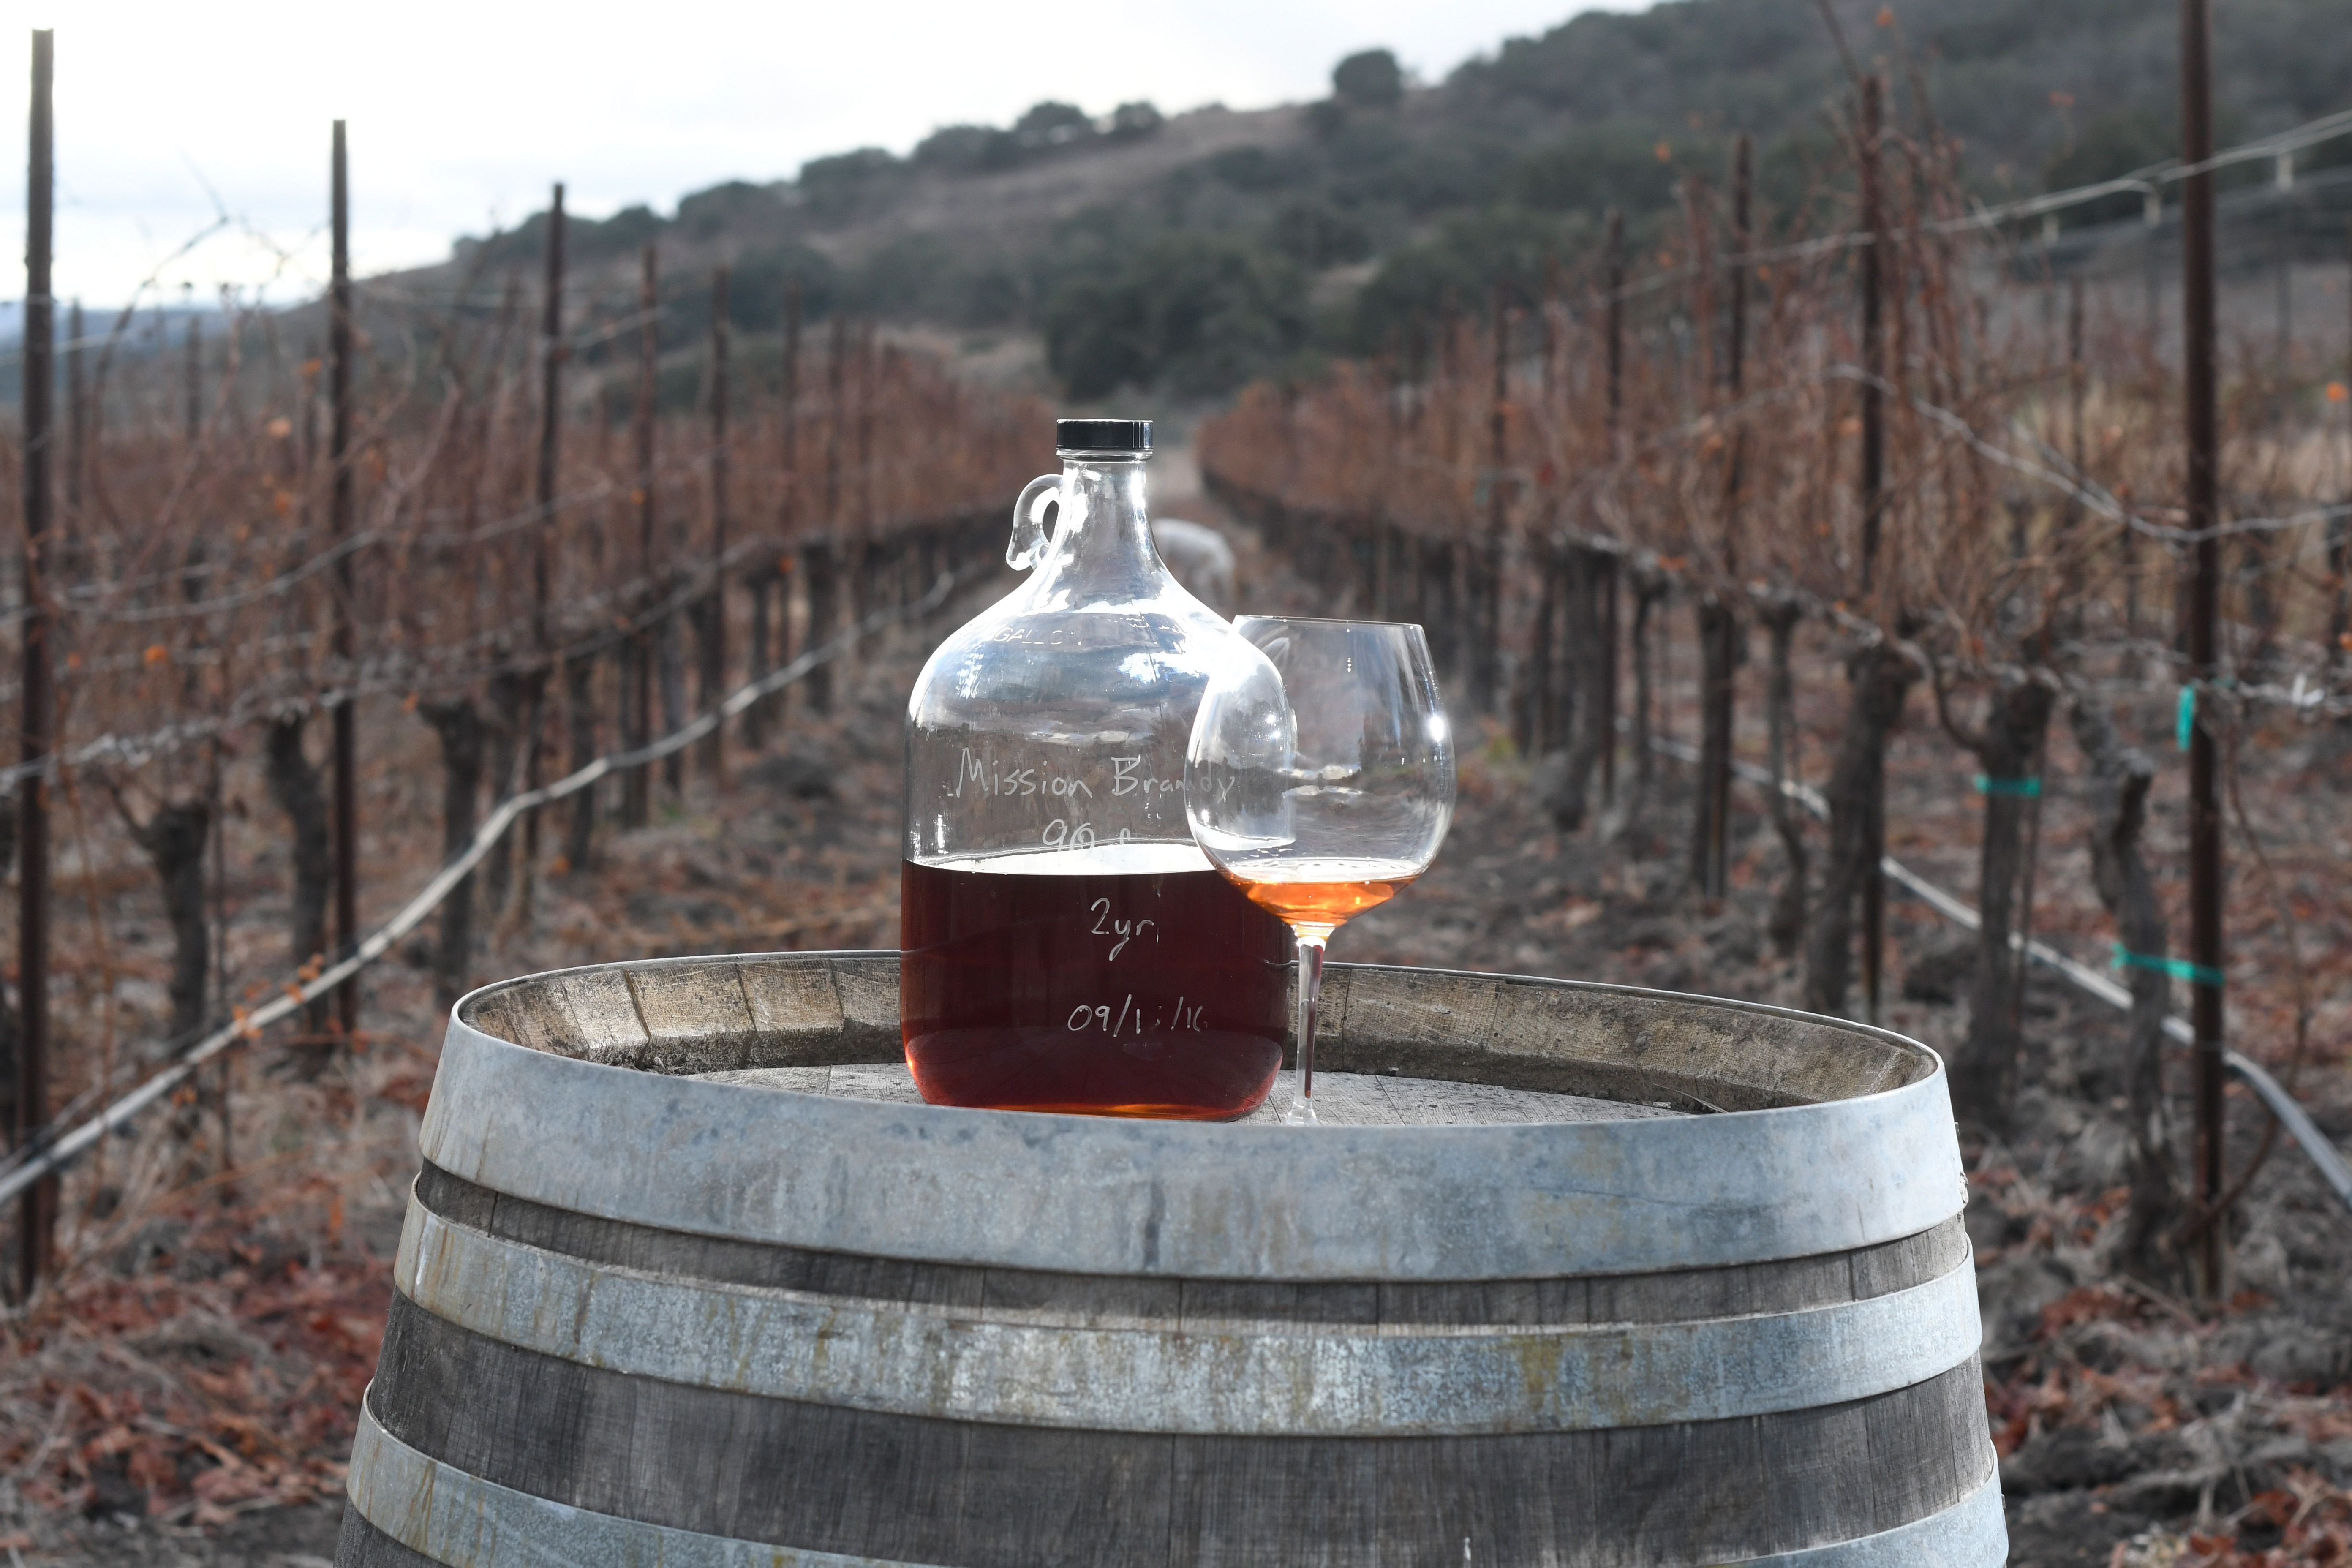 Jugs of Gypsy Canyonu0027s Angelica like this one are sold in 375 mL bottles. & Santa Barbarau0027s Ancient Wines Then and Now